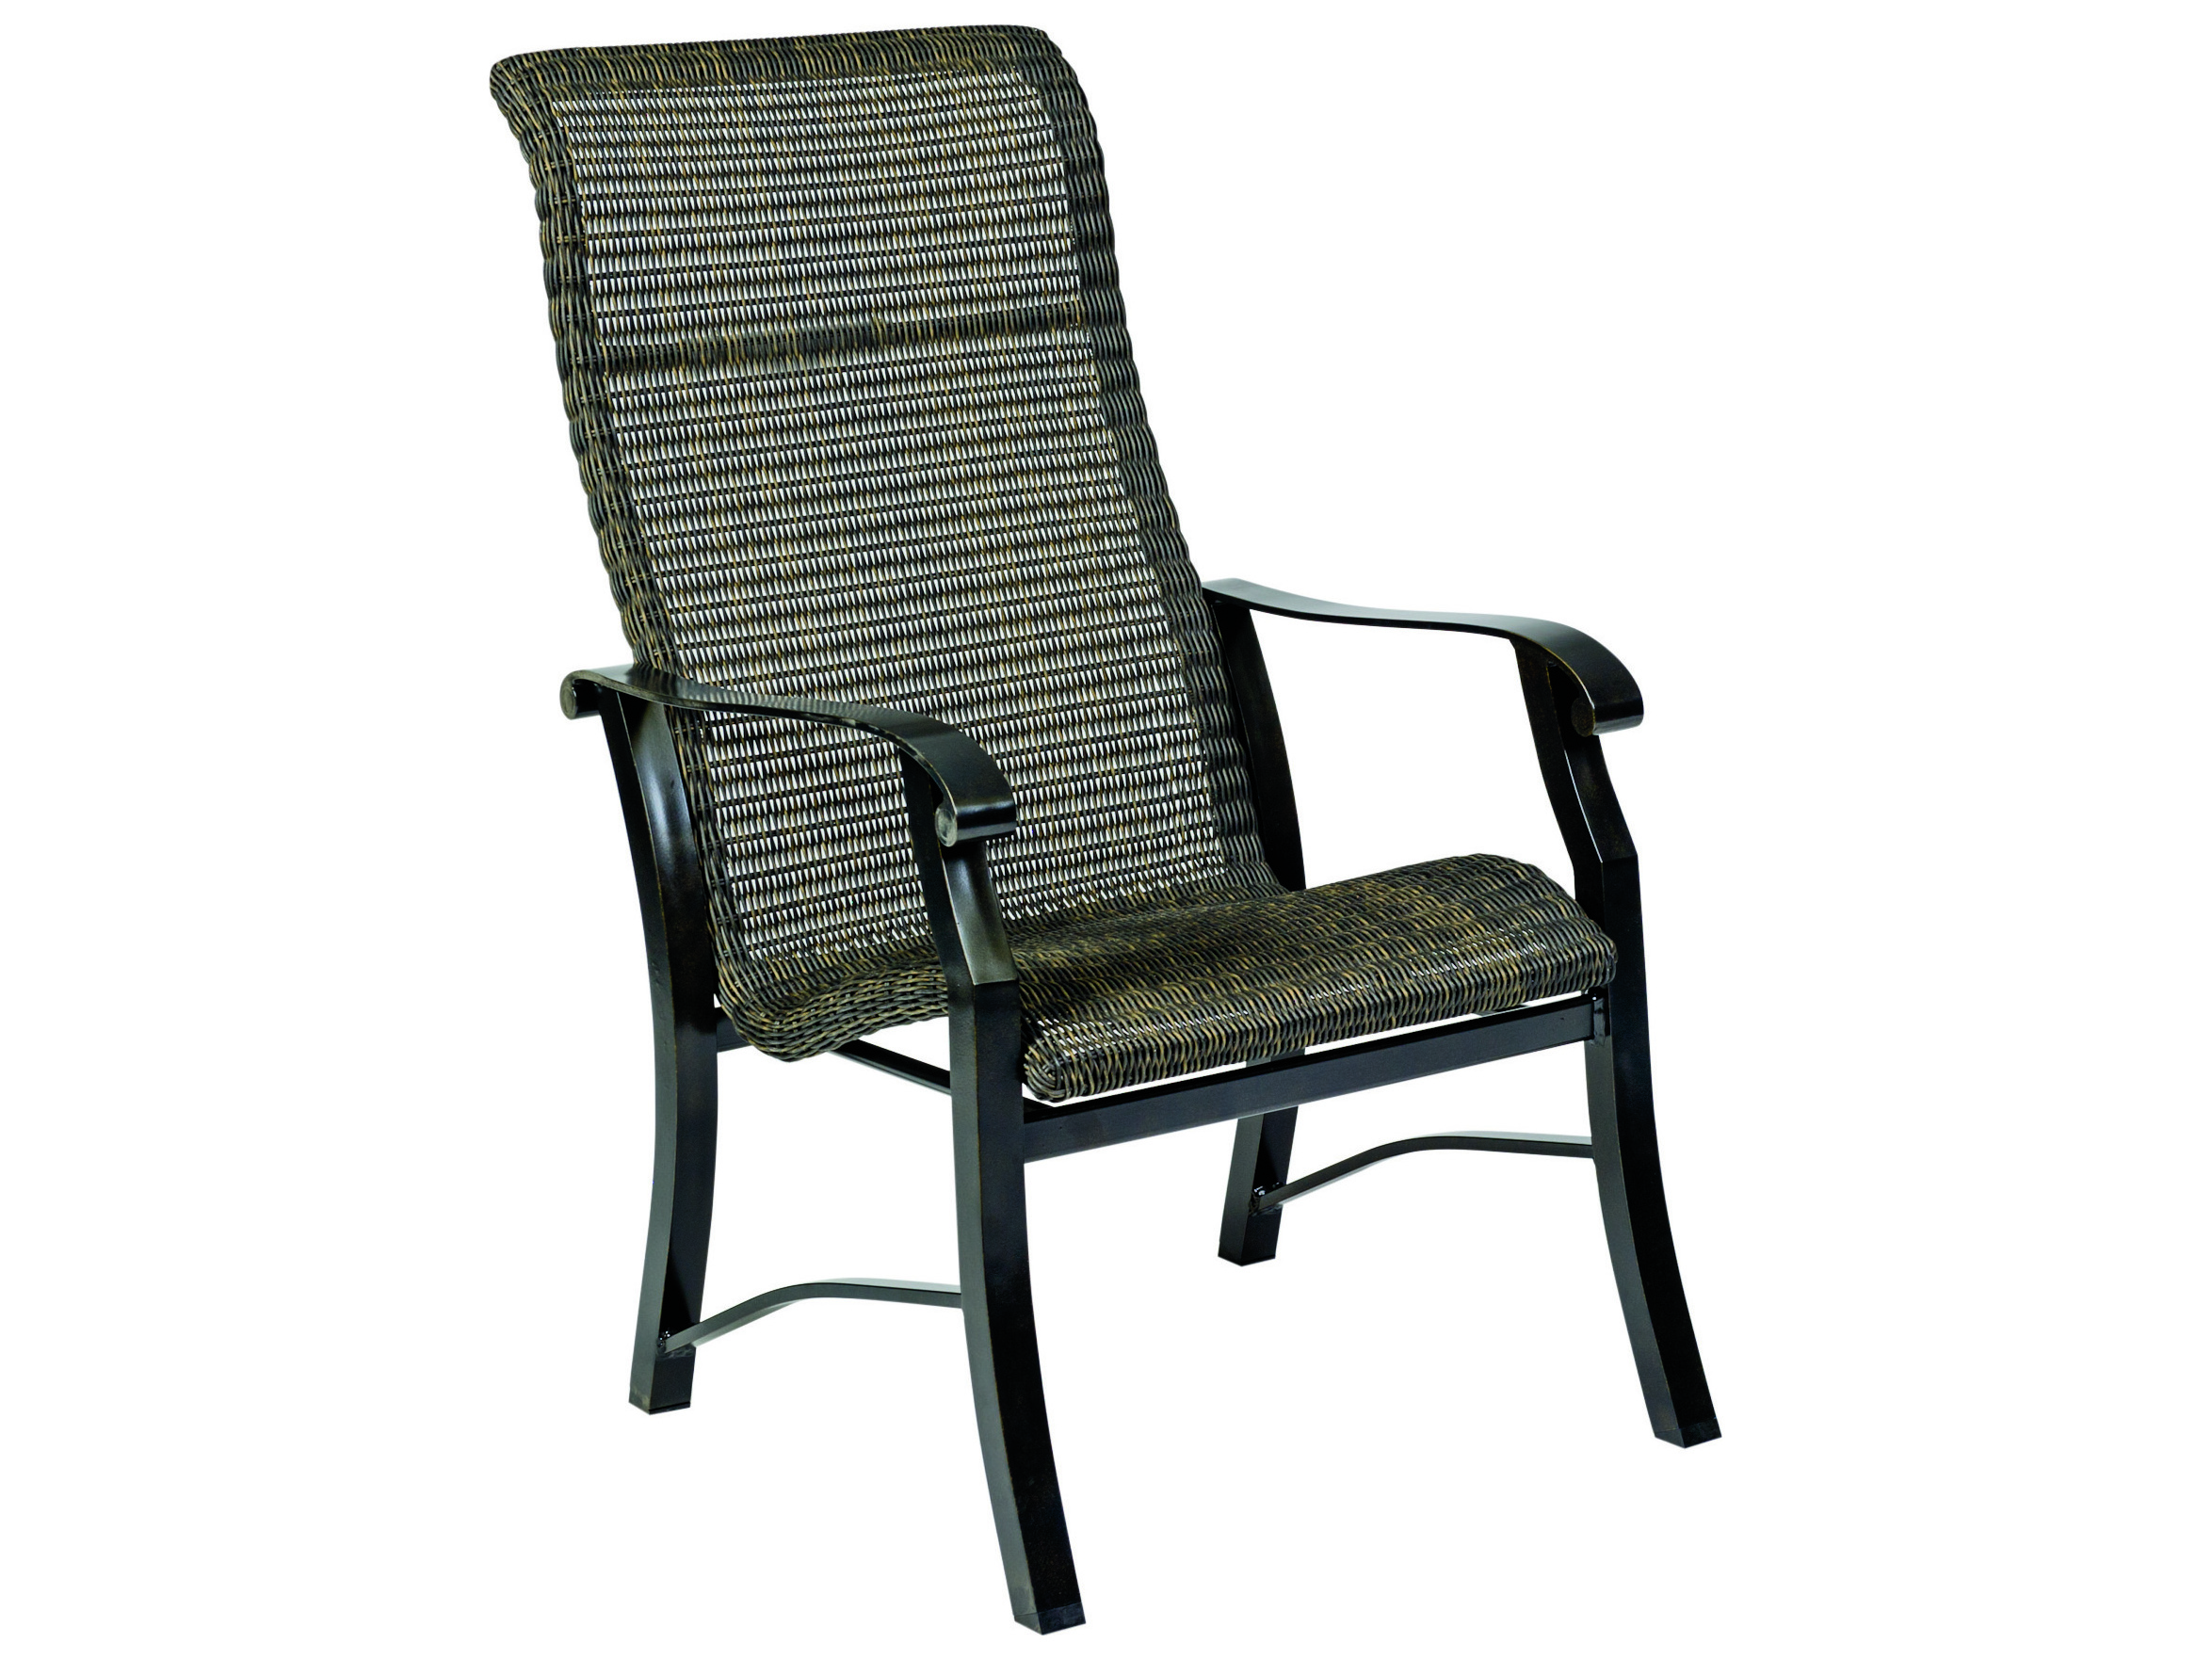 High Back Patio Furniture: Woodard Cortland Woven Round Weave Wicker High Back Dining